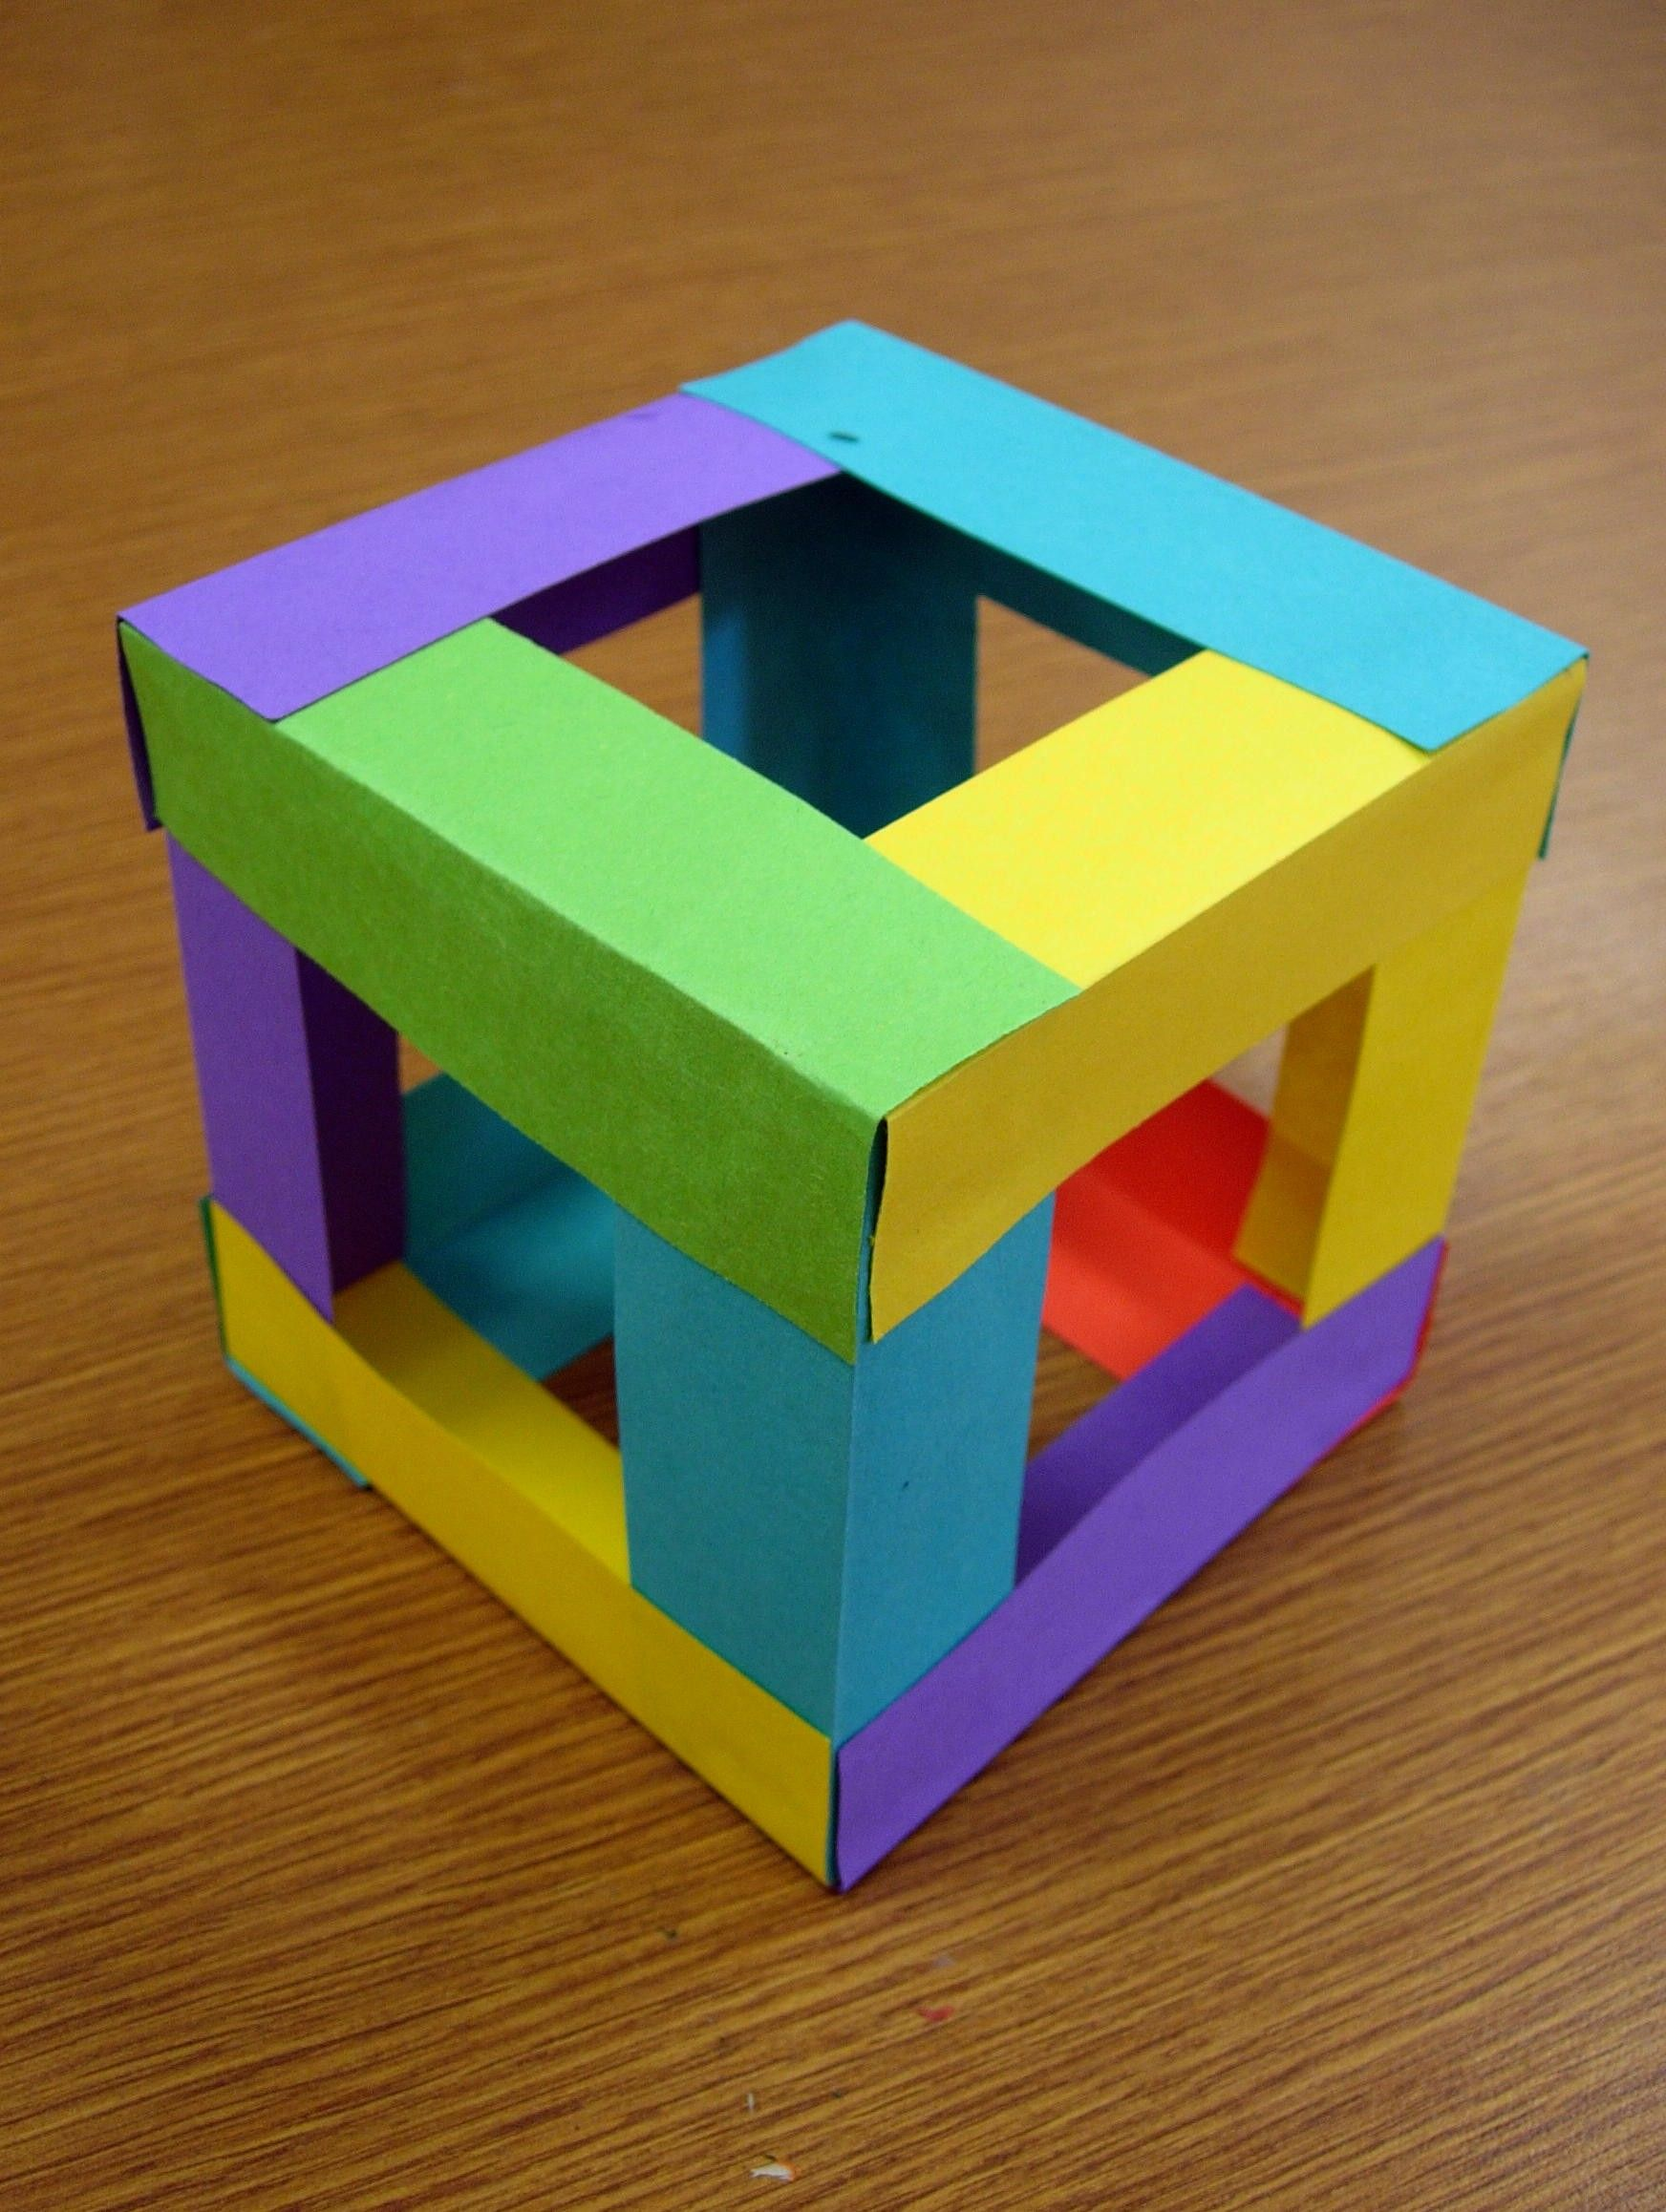 1000+ images about Cubes on Pinterest | Wooden cubes, Galleries ...